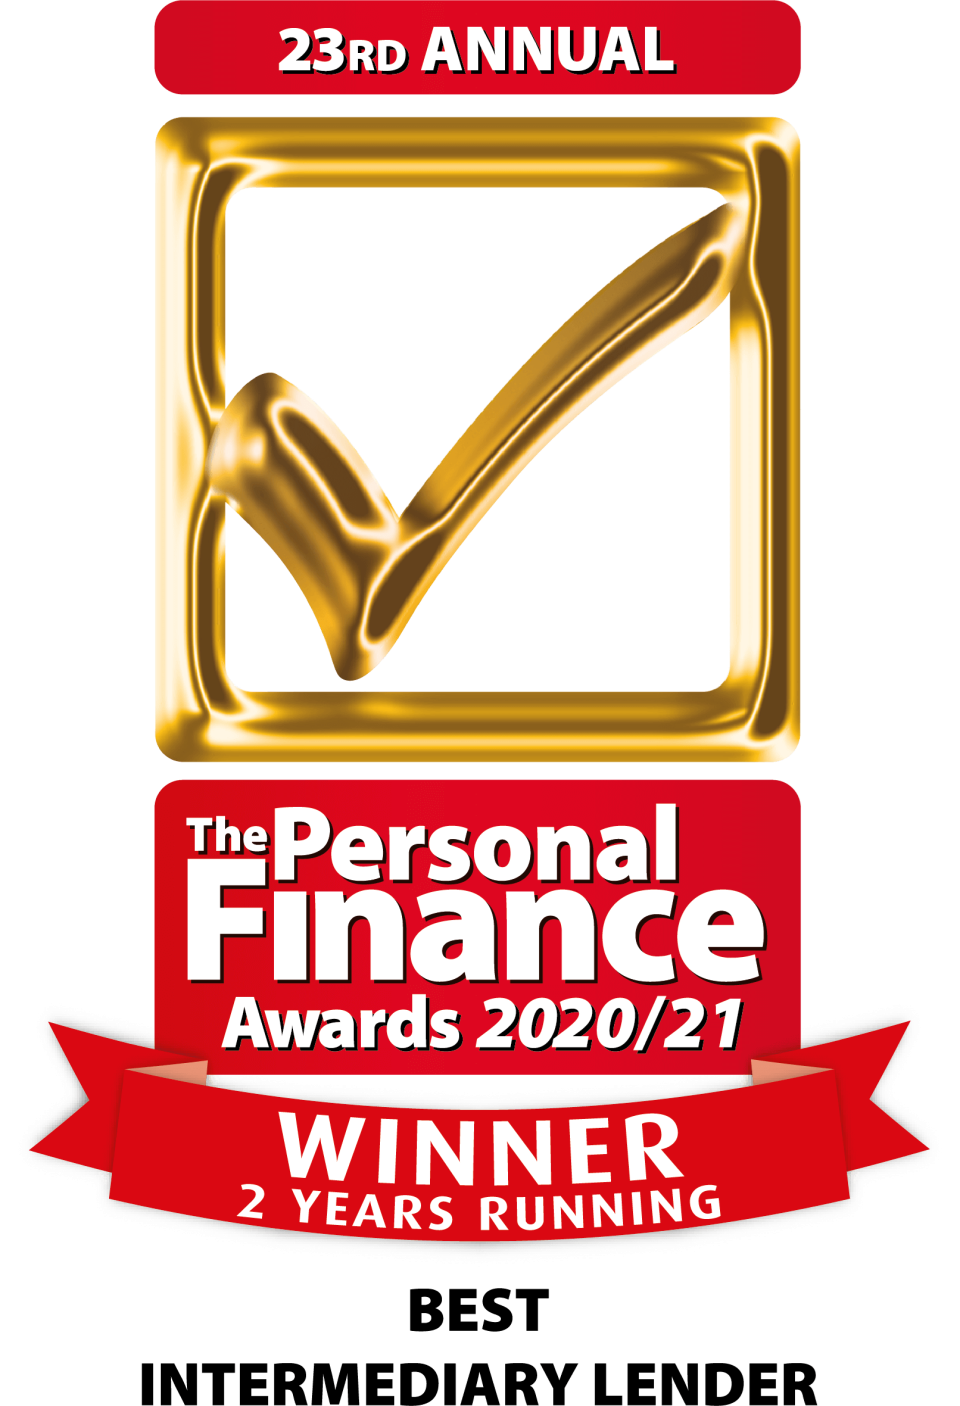 Personal Finance Awards Best Intermediary Lender